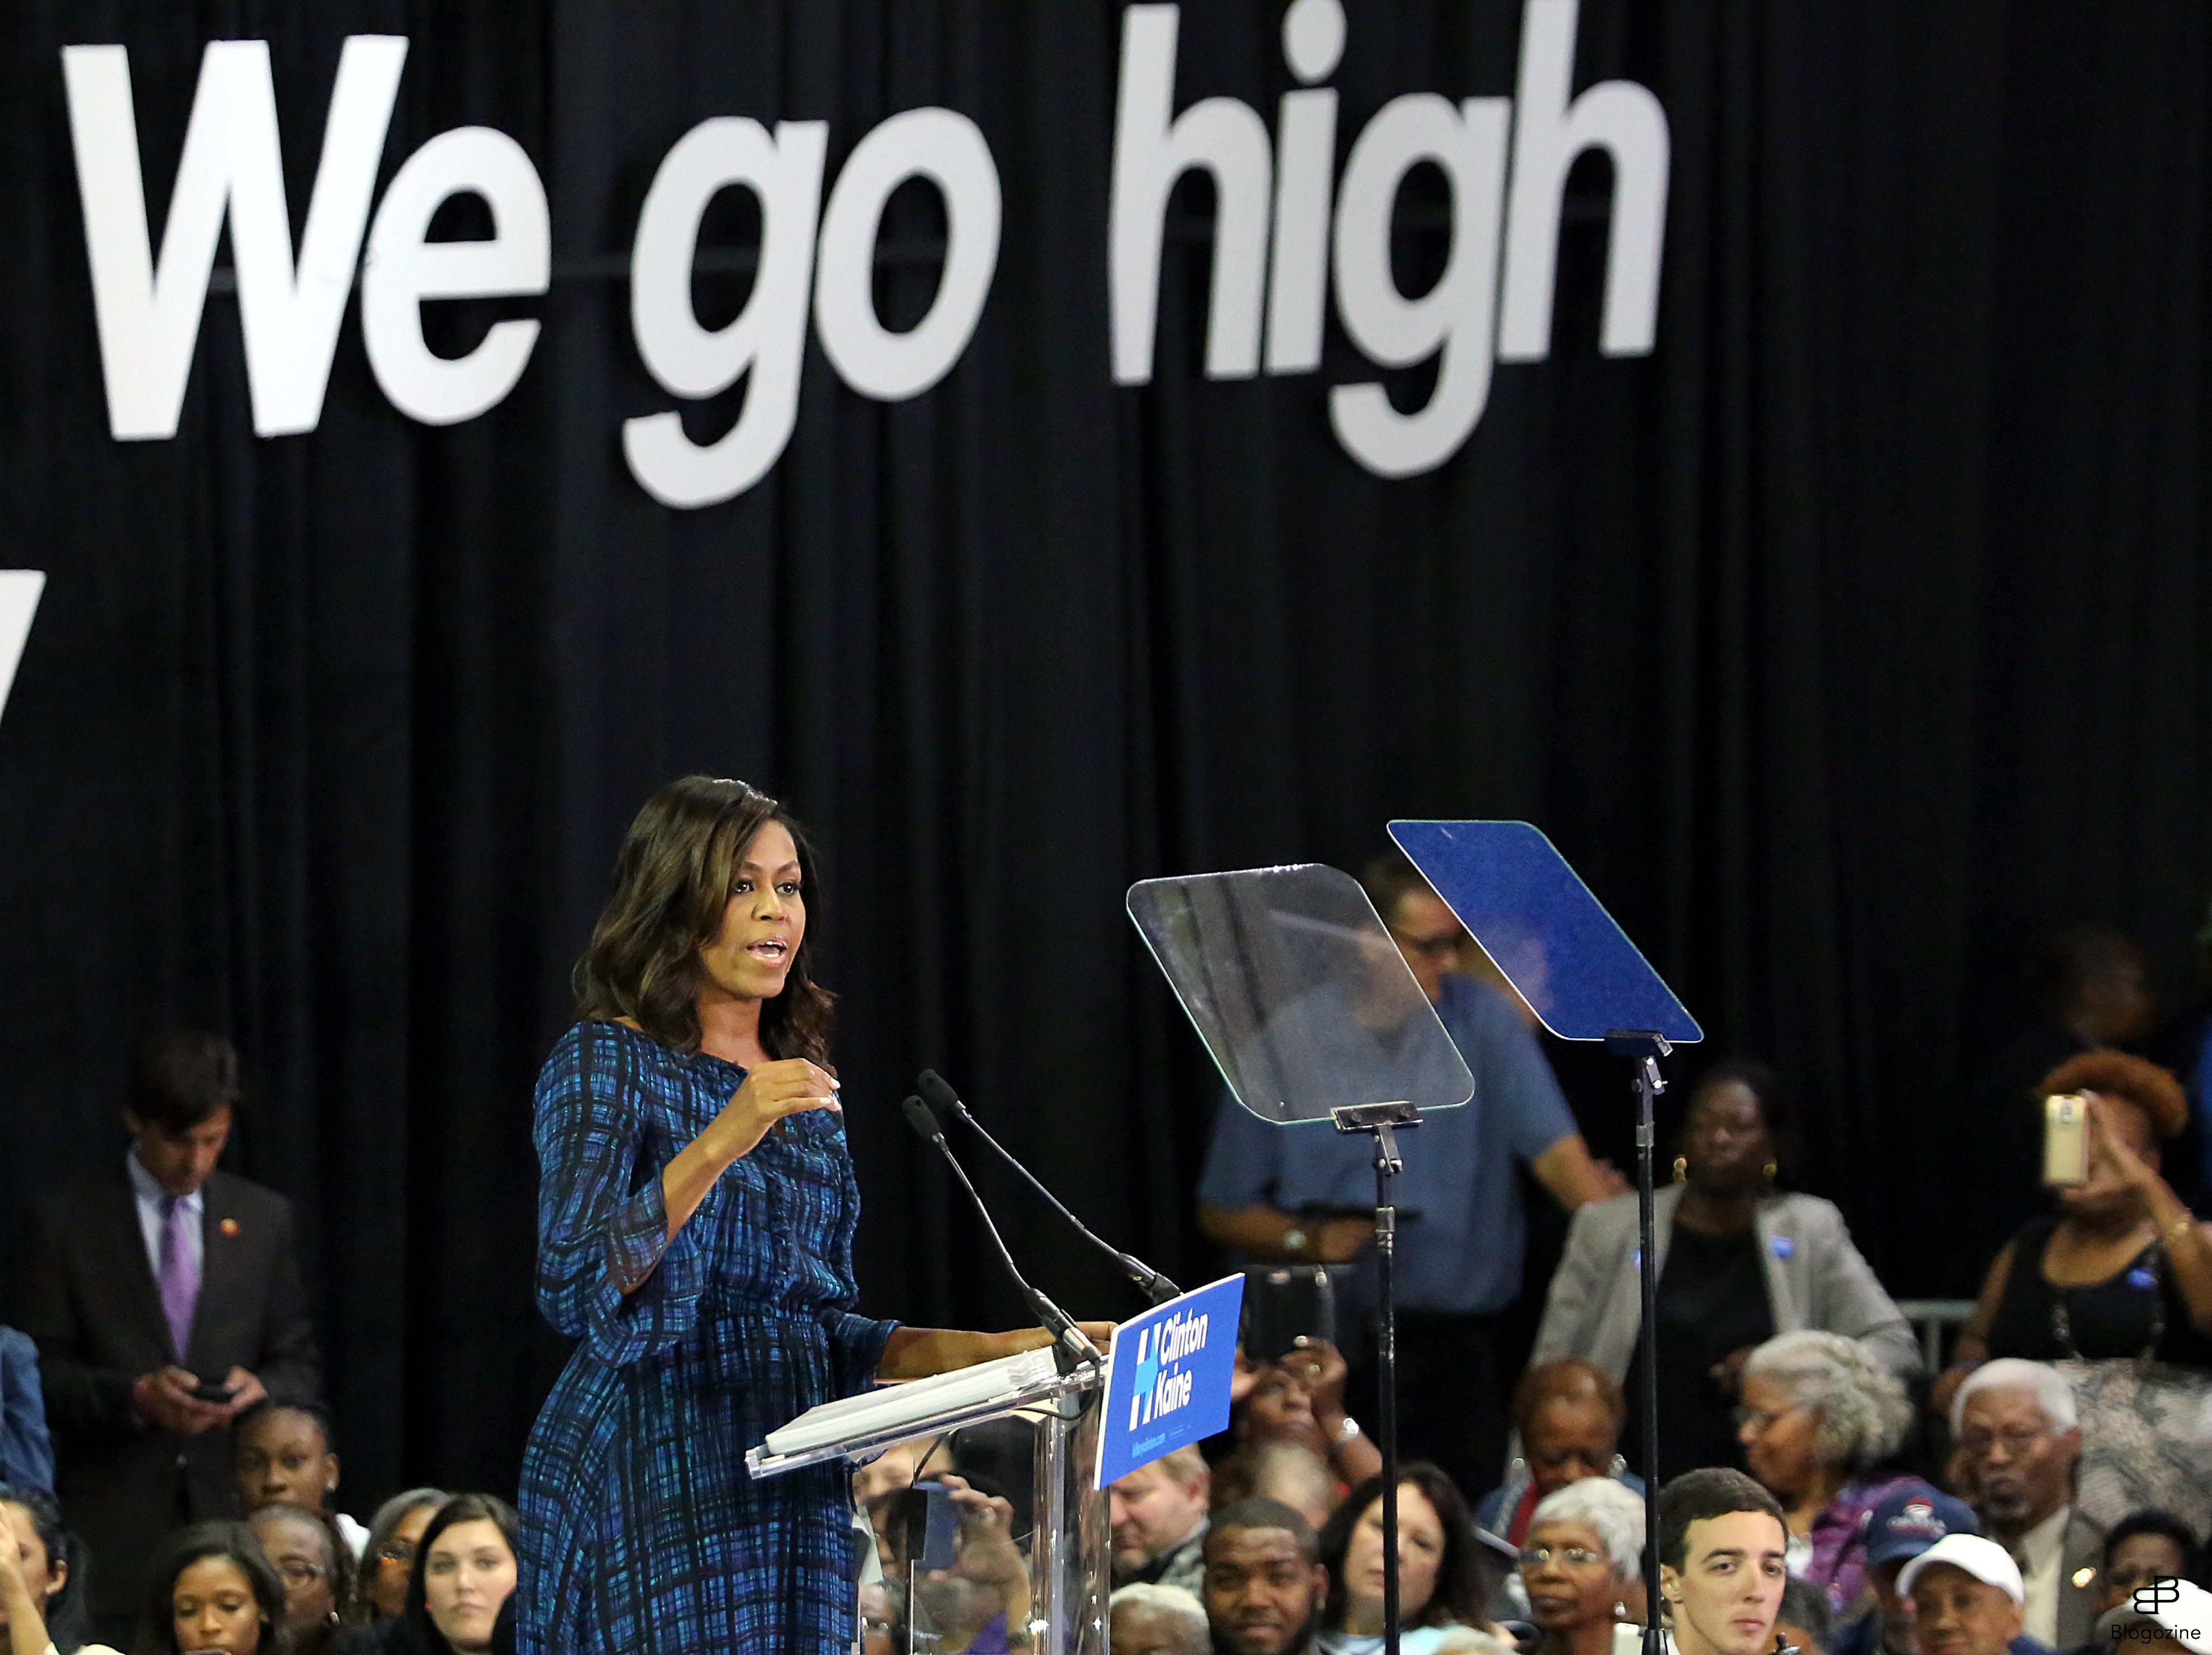 6220077 PHILADELPHIA, PA - SEPTEMBER 28: The First Lady, Michelle Obama pictured laying out the stakes of the election and urging Pennsylvanians to support Clinton and Kaine and register to vote ahead of the October 11 deadline at the Tom Gola Arena at LaSalle University in Philadelphia, Pennsylvania on September 28, 2016 photo credit Star Shooter /insight media COPYRIGHT STELLA PICTURES